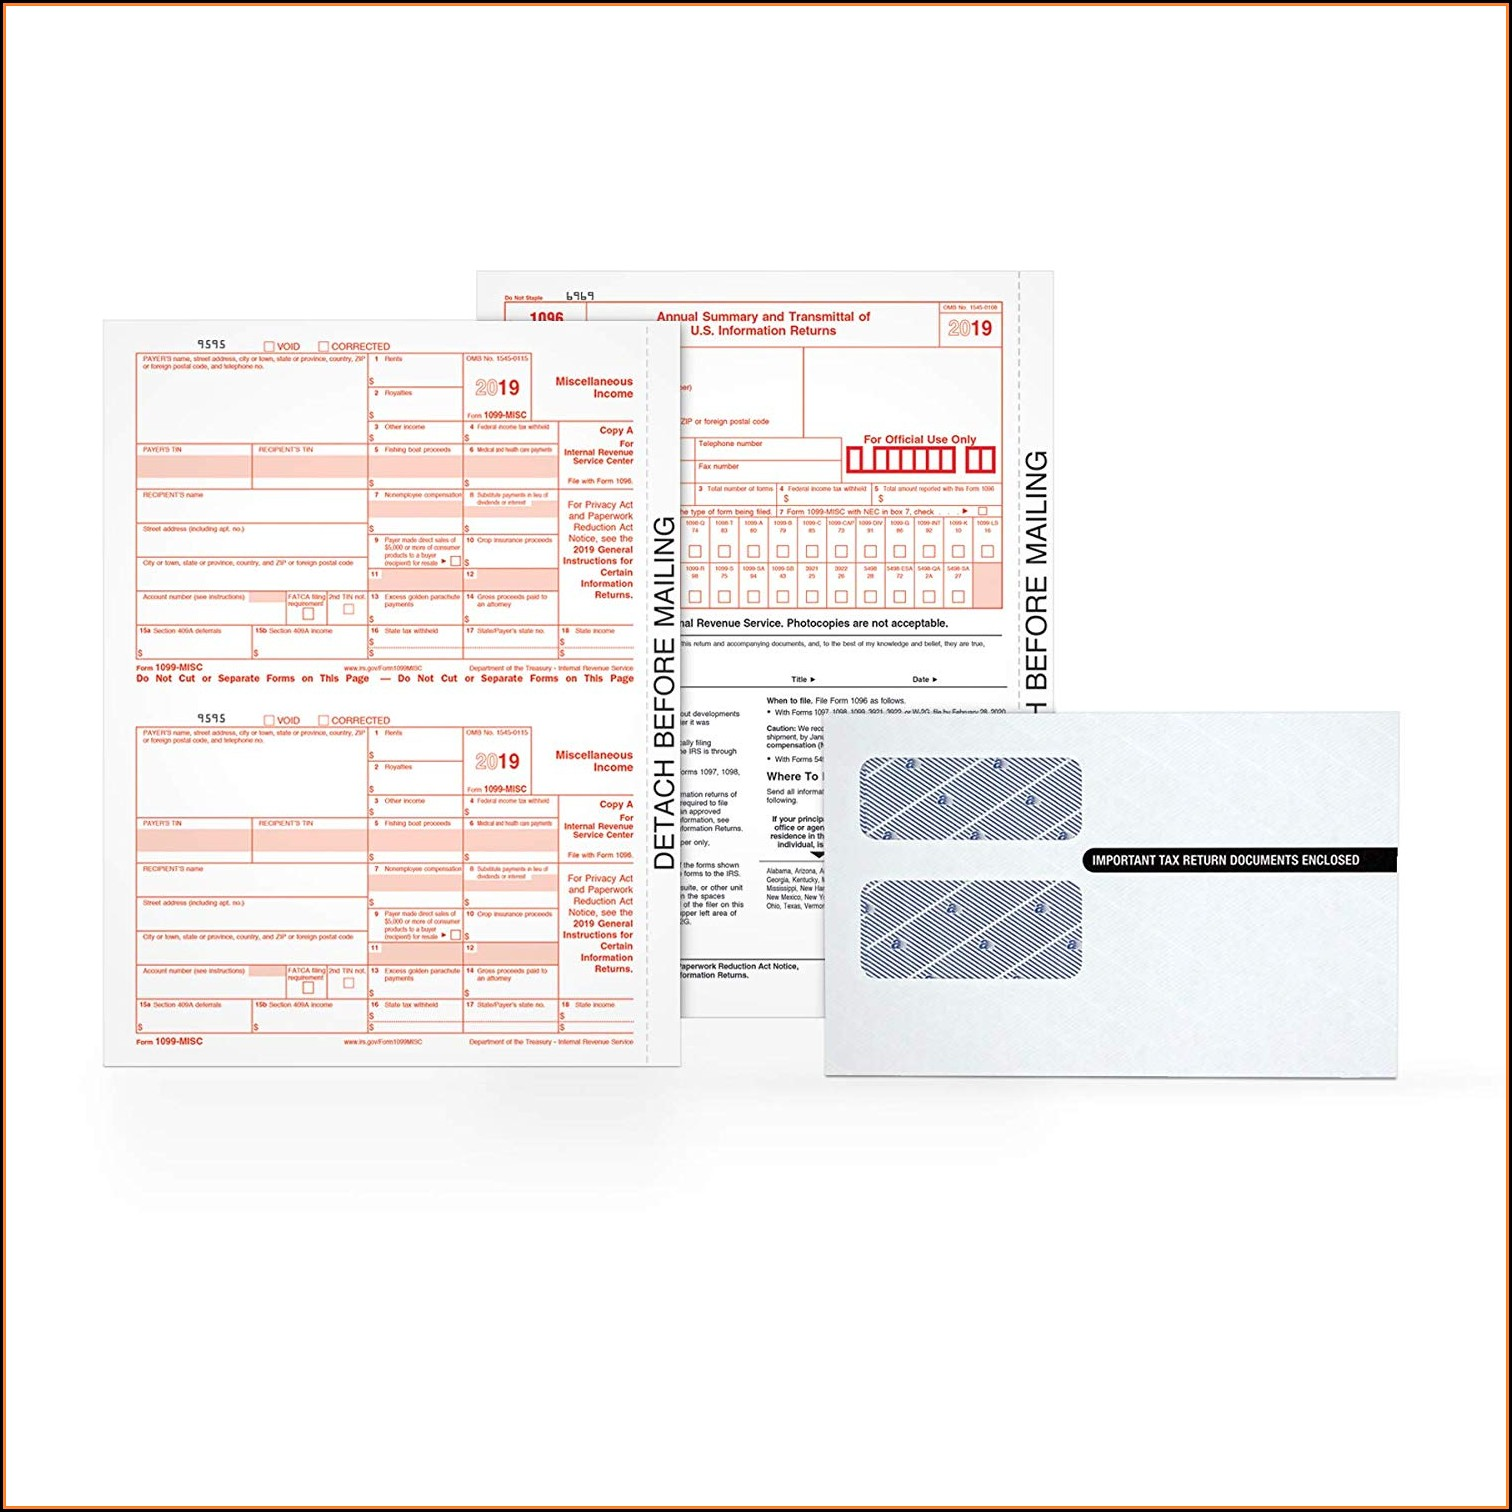 Where Can I Get 1099 Misc Forms For 2018